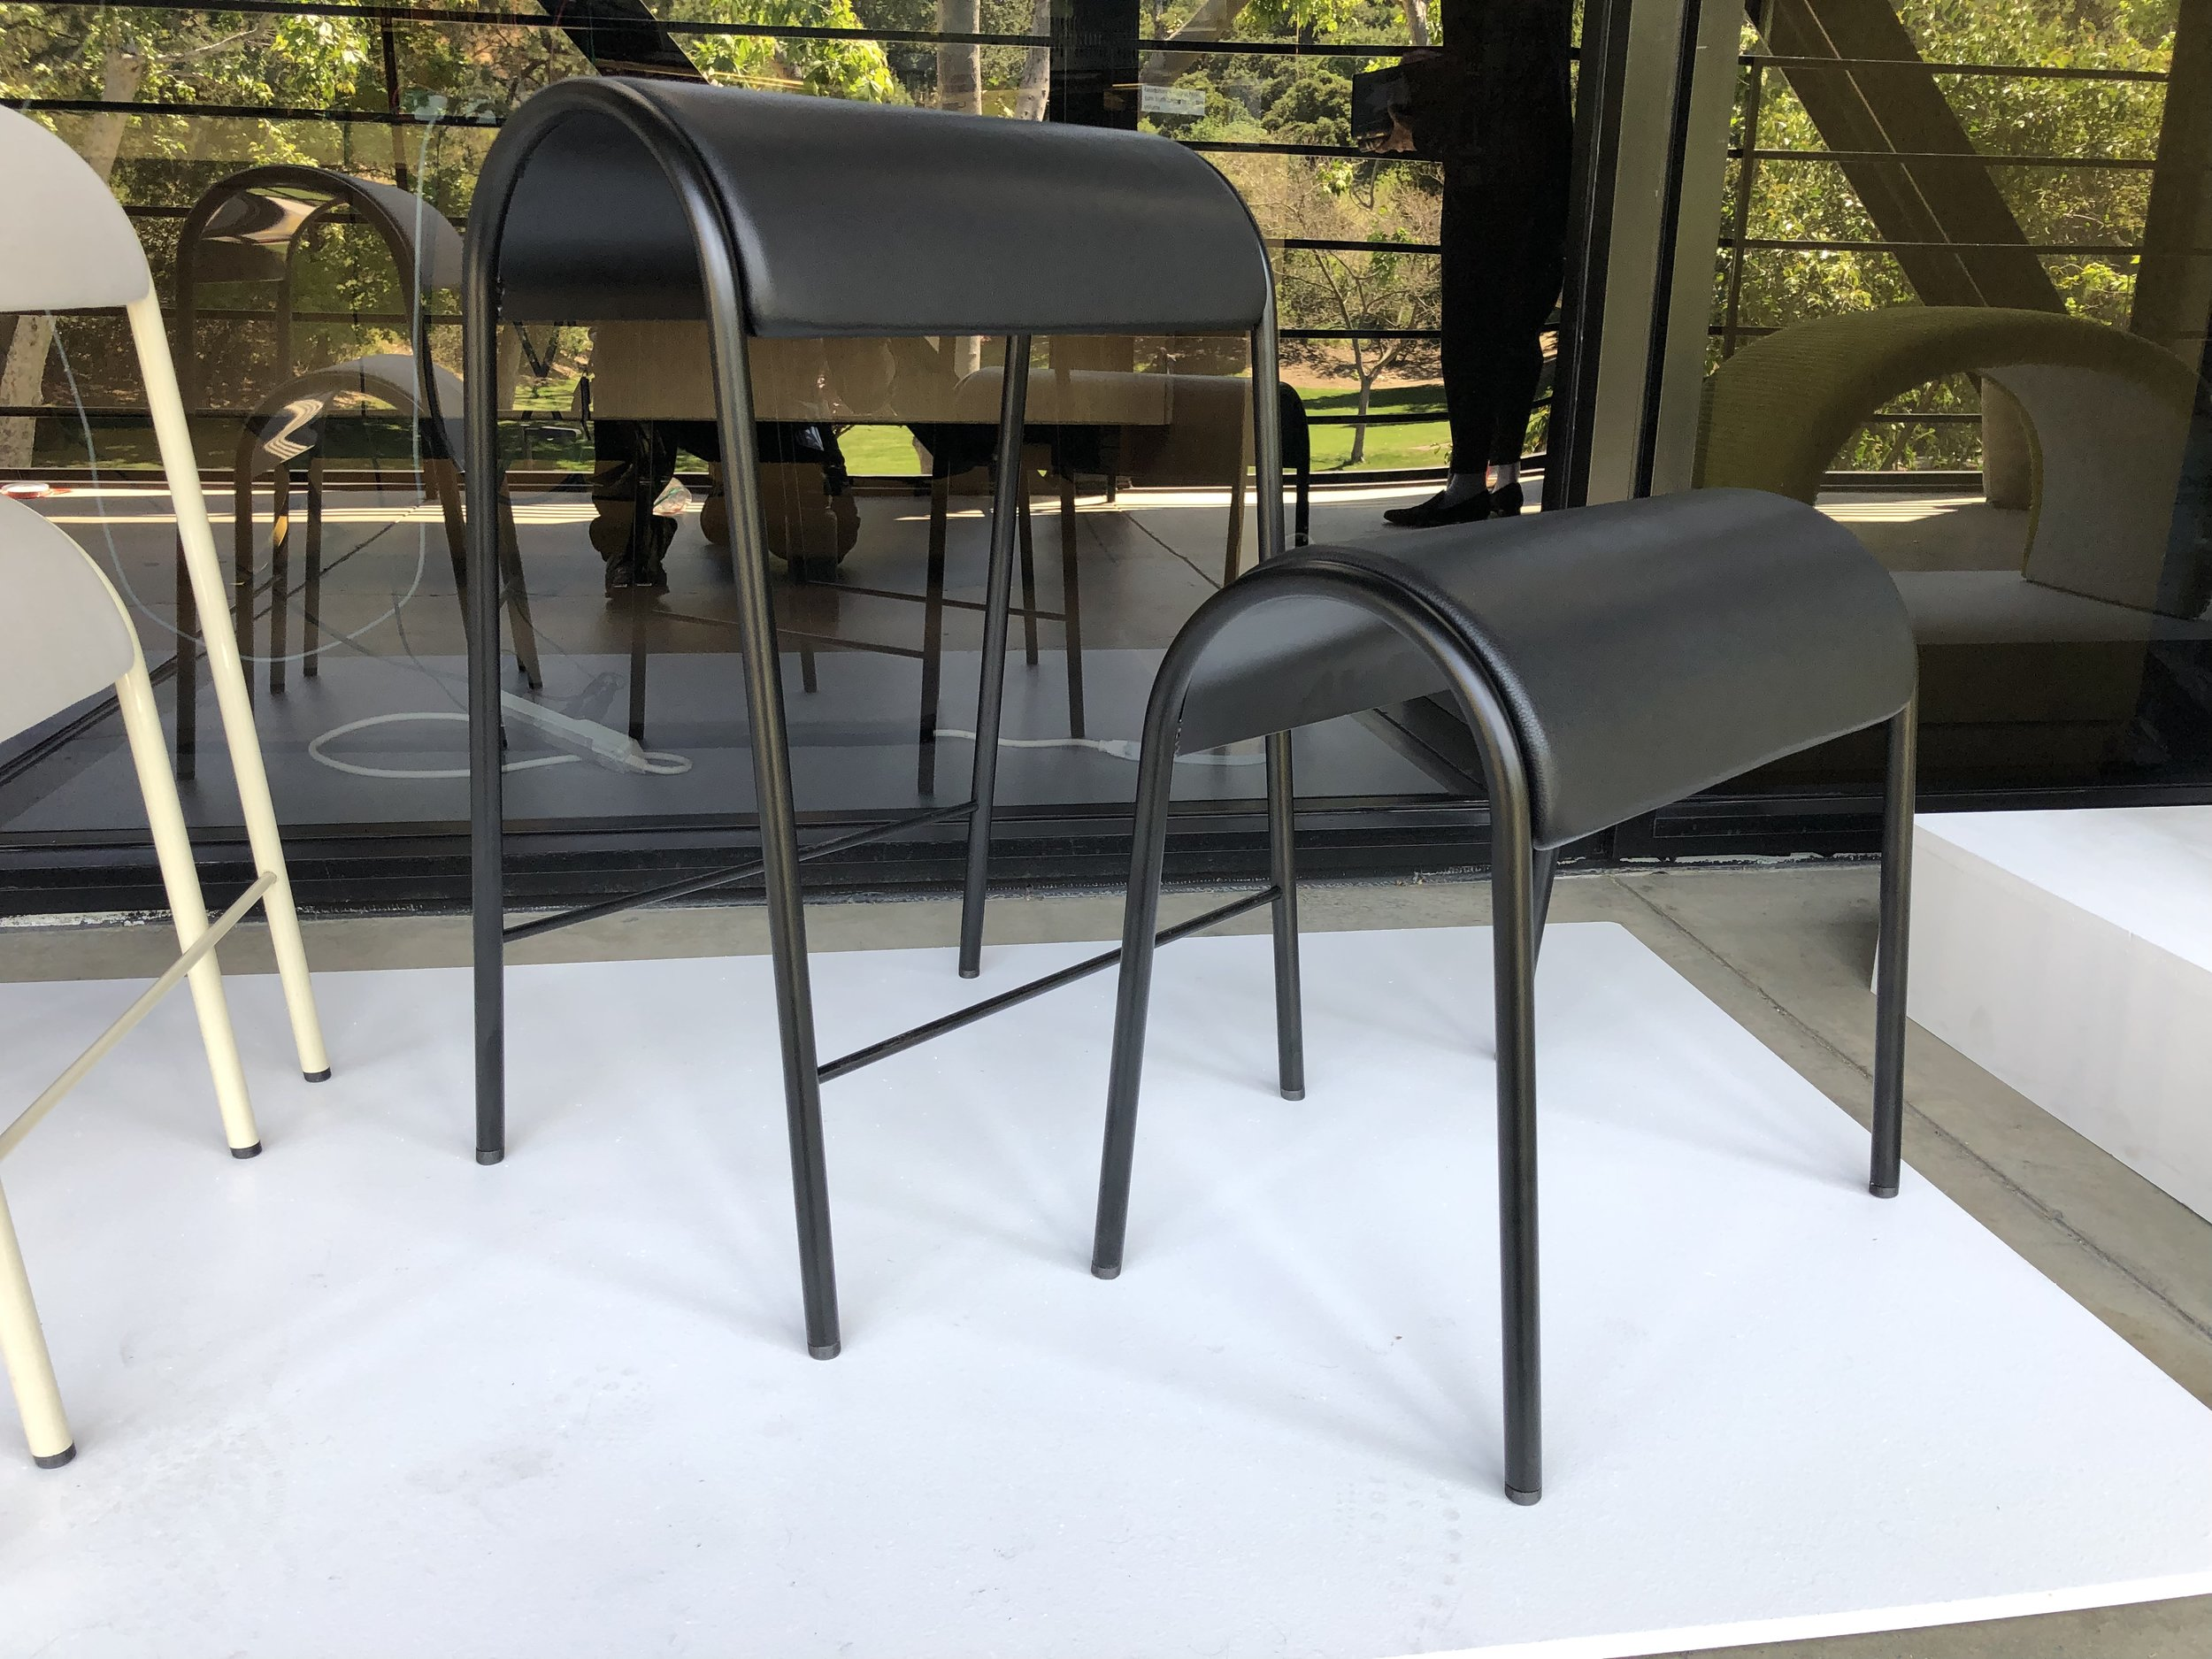 Satin black metal frame, with black leather upholstery.